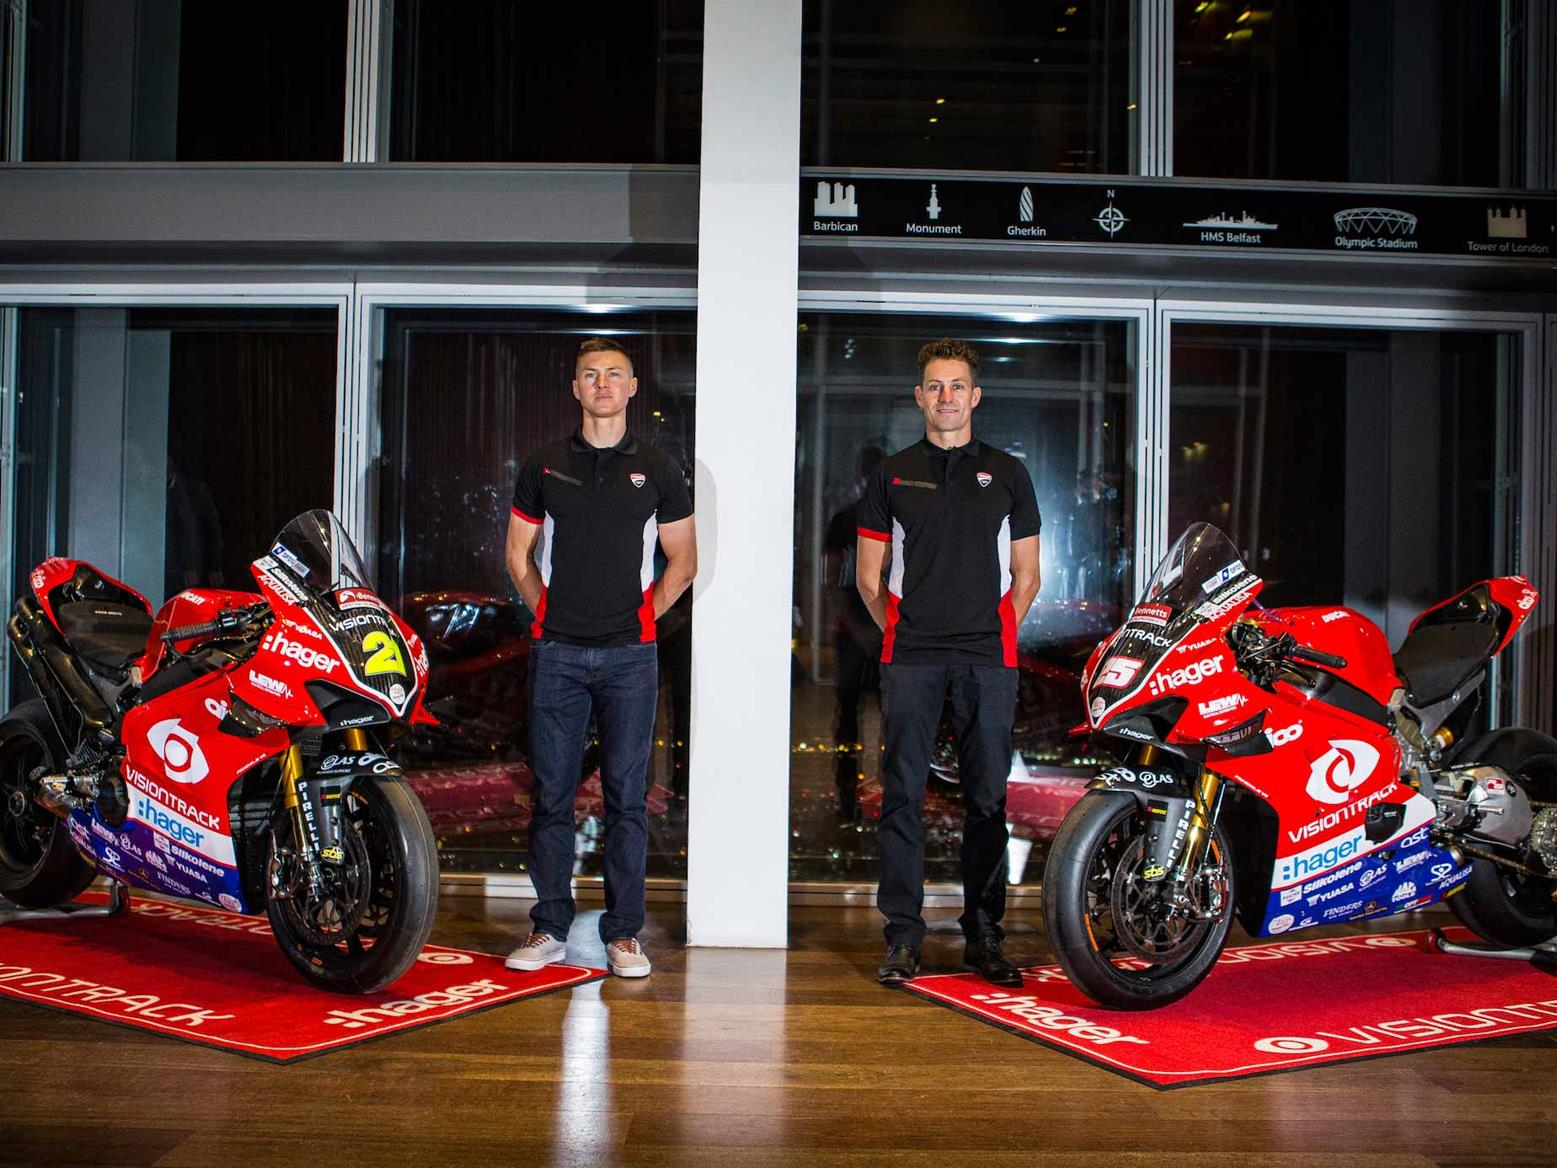 VisionTrack Ducati unveiled in special launch event at The Shard